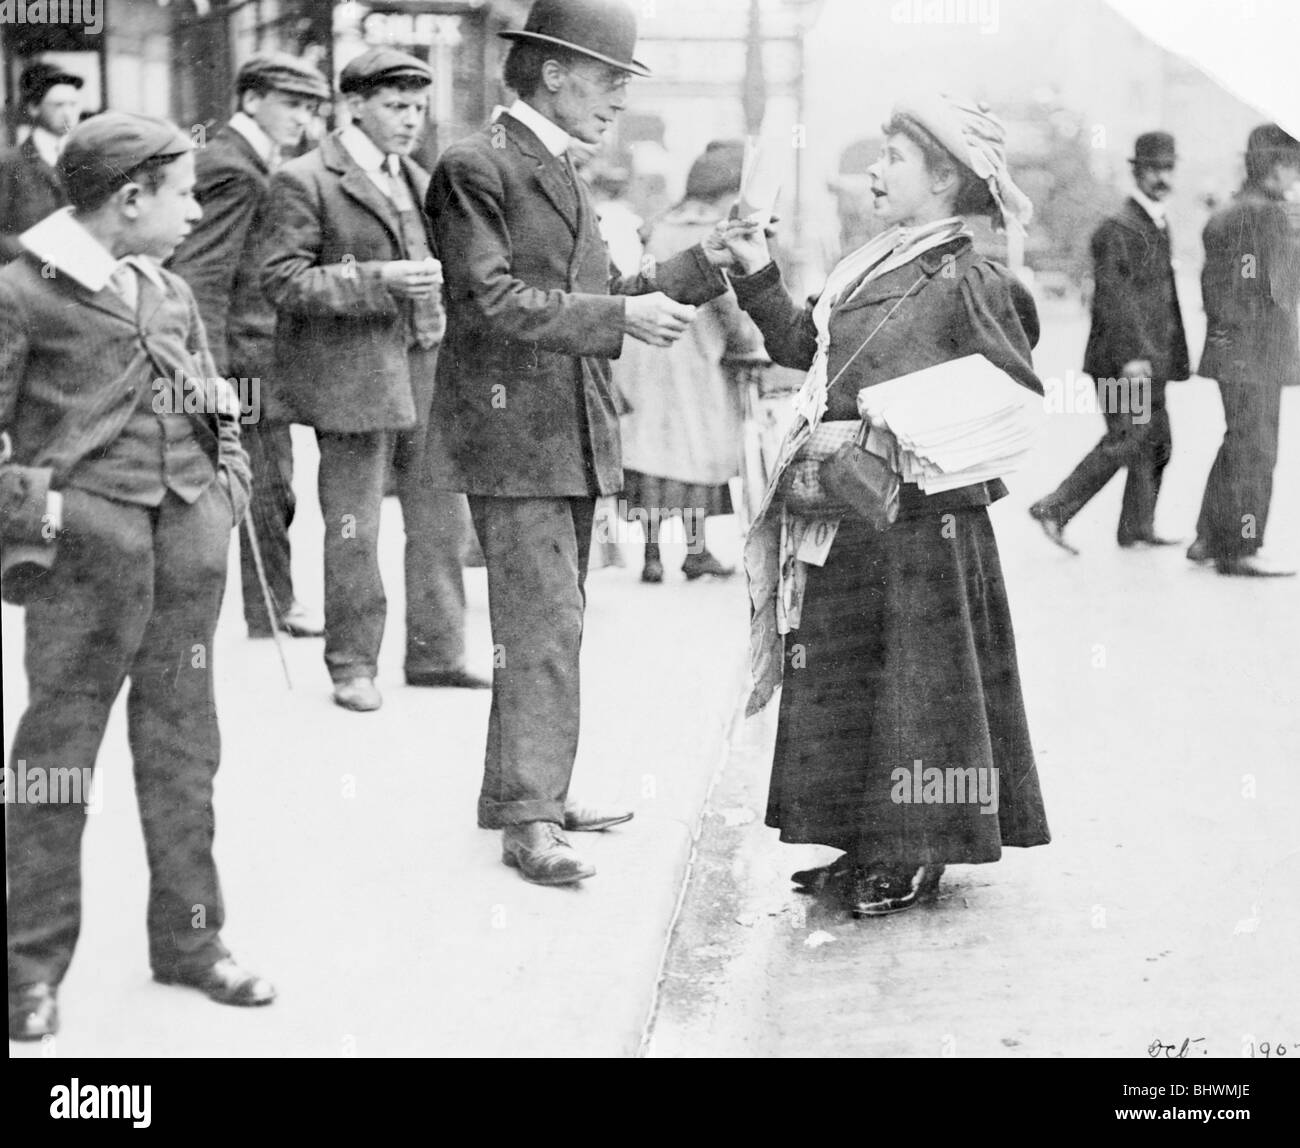 Mary Phillips selling Votes for Women in London, October 1907. - Stock Image